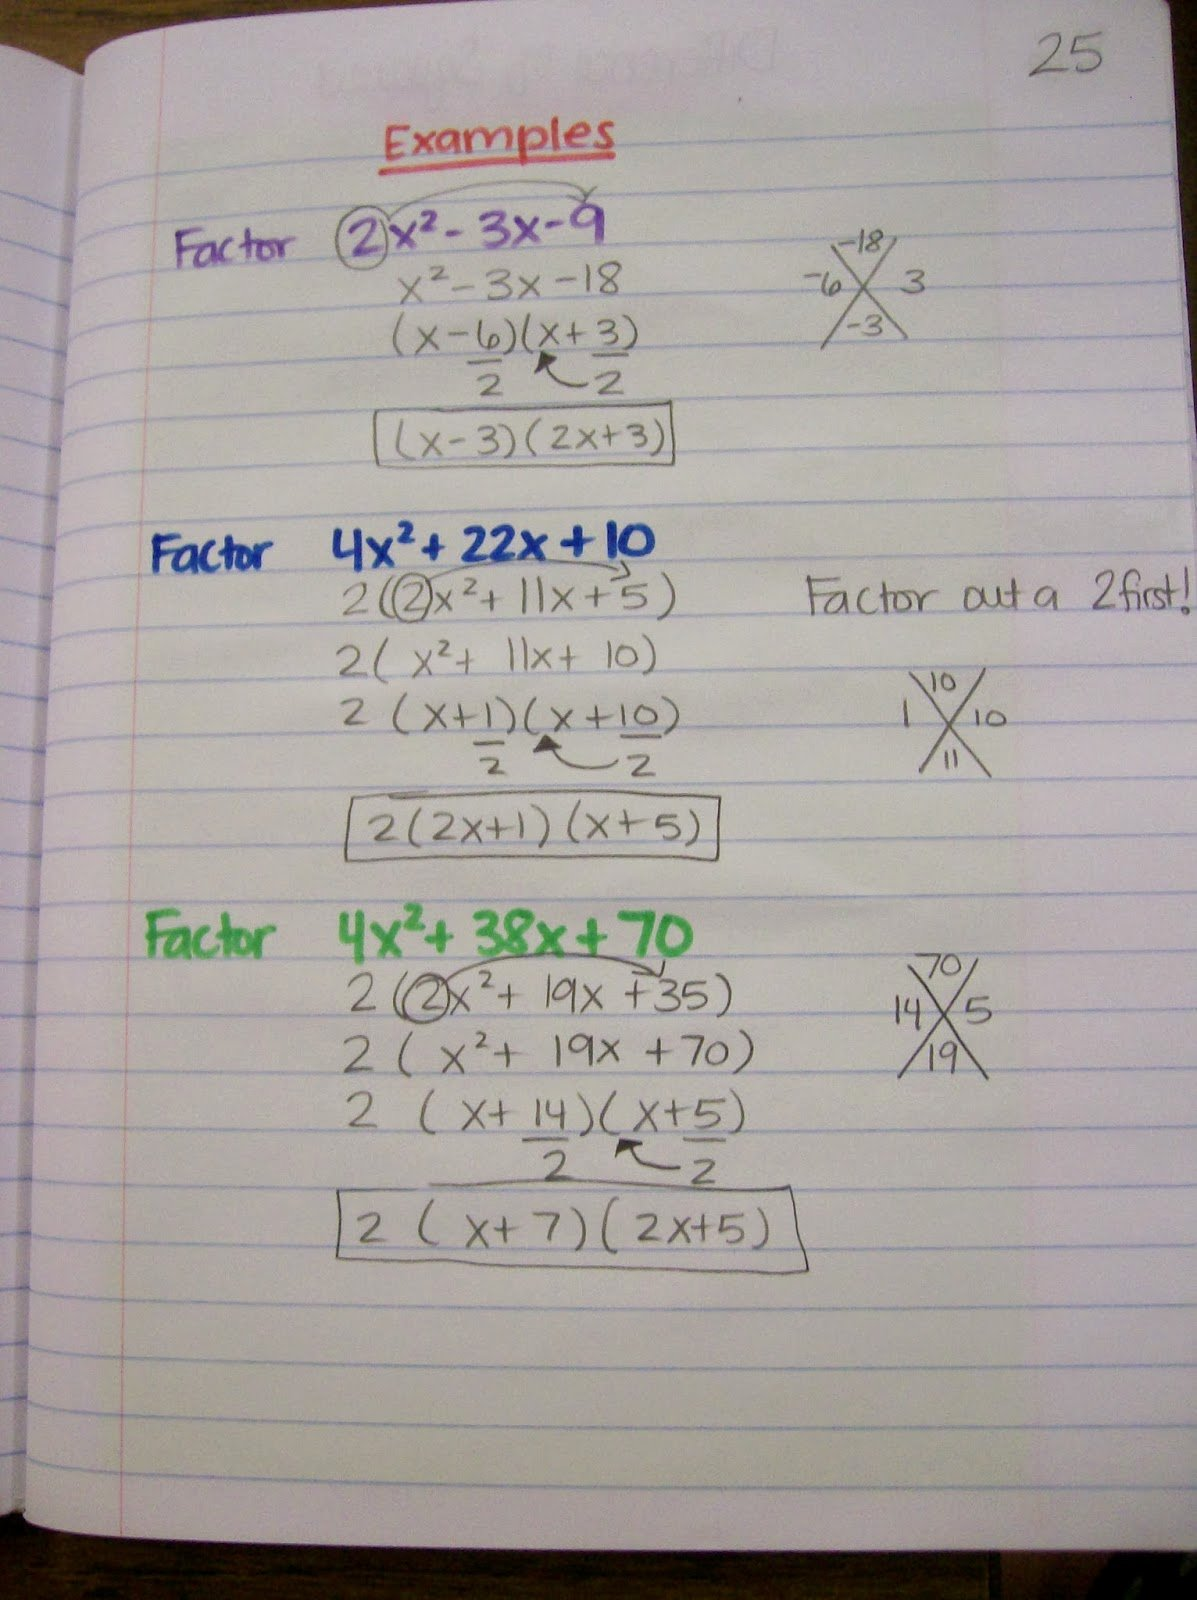 Algebra 2 Factoring Worksheet Beautiful Math = Love Algebra 1 Inb Pages Polynomials and Factoring